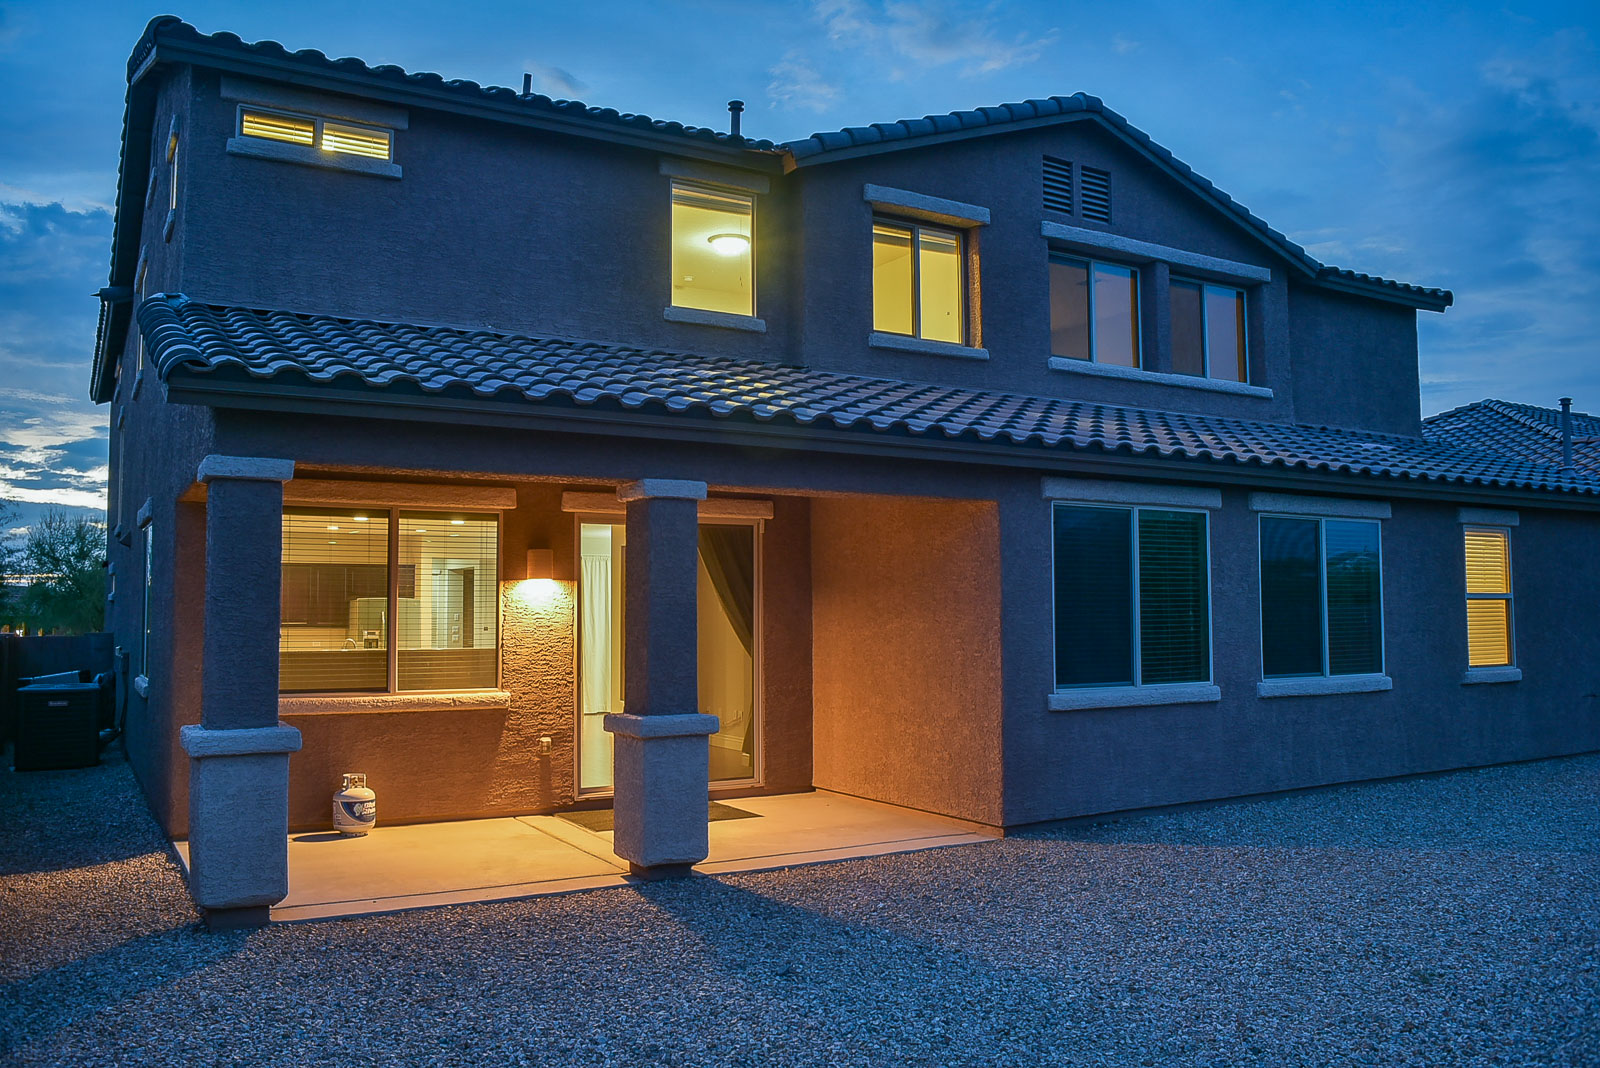 12252 North Wind Runner Parkway, Marana AZ 85658 Home For Sale with Lucy Barraza